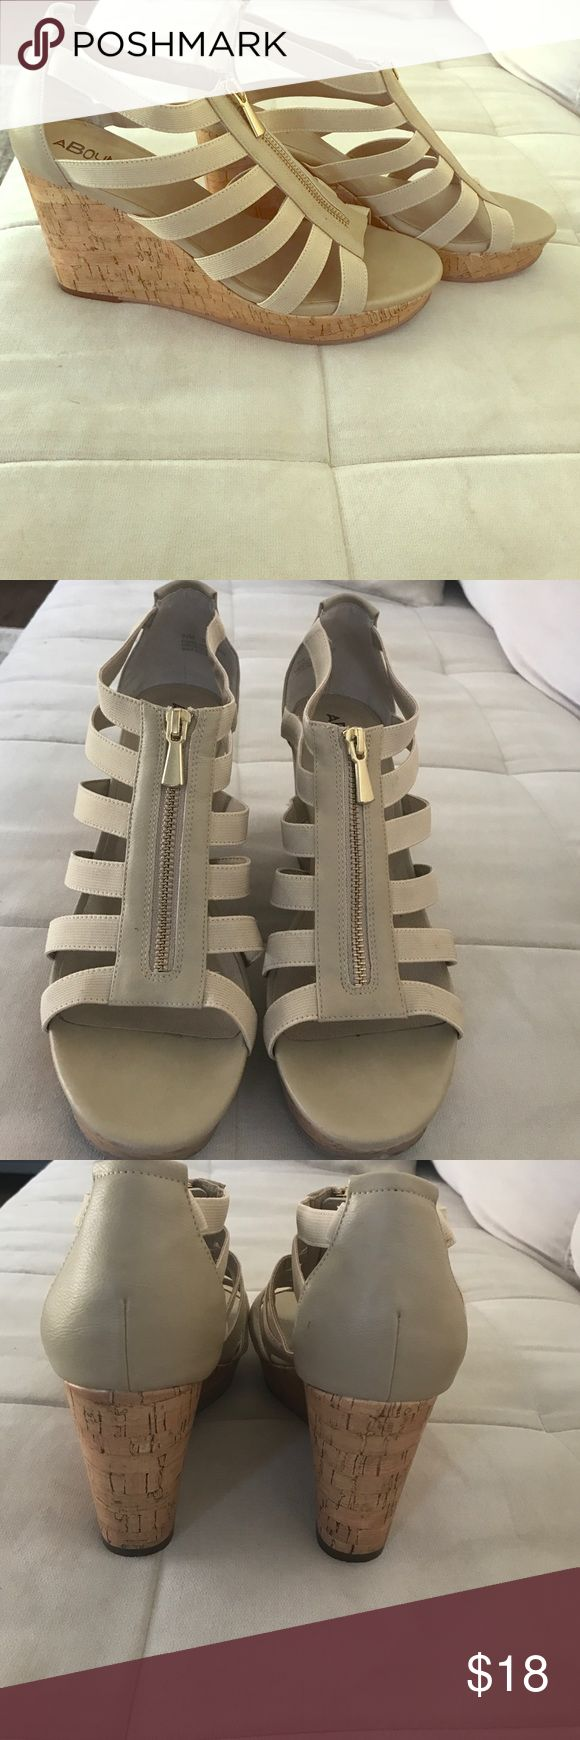 Beige wedges Gently used beige wedges Abound Shoes Wedges